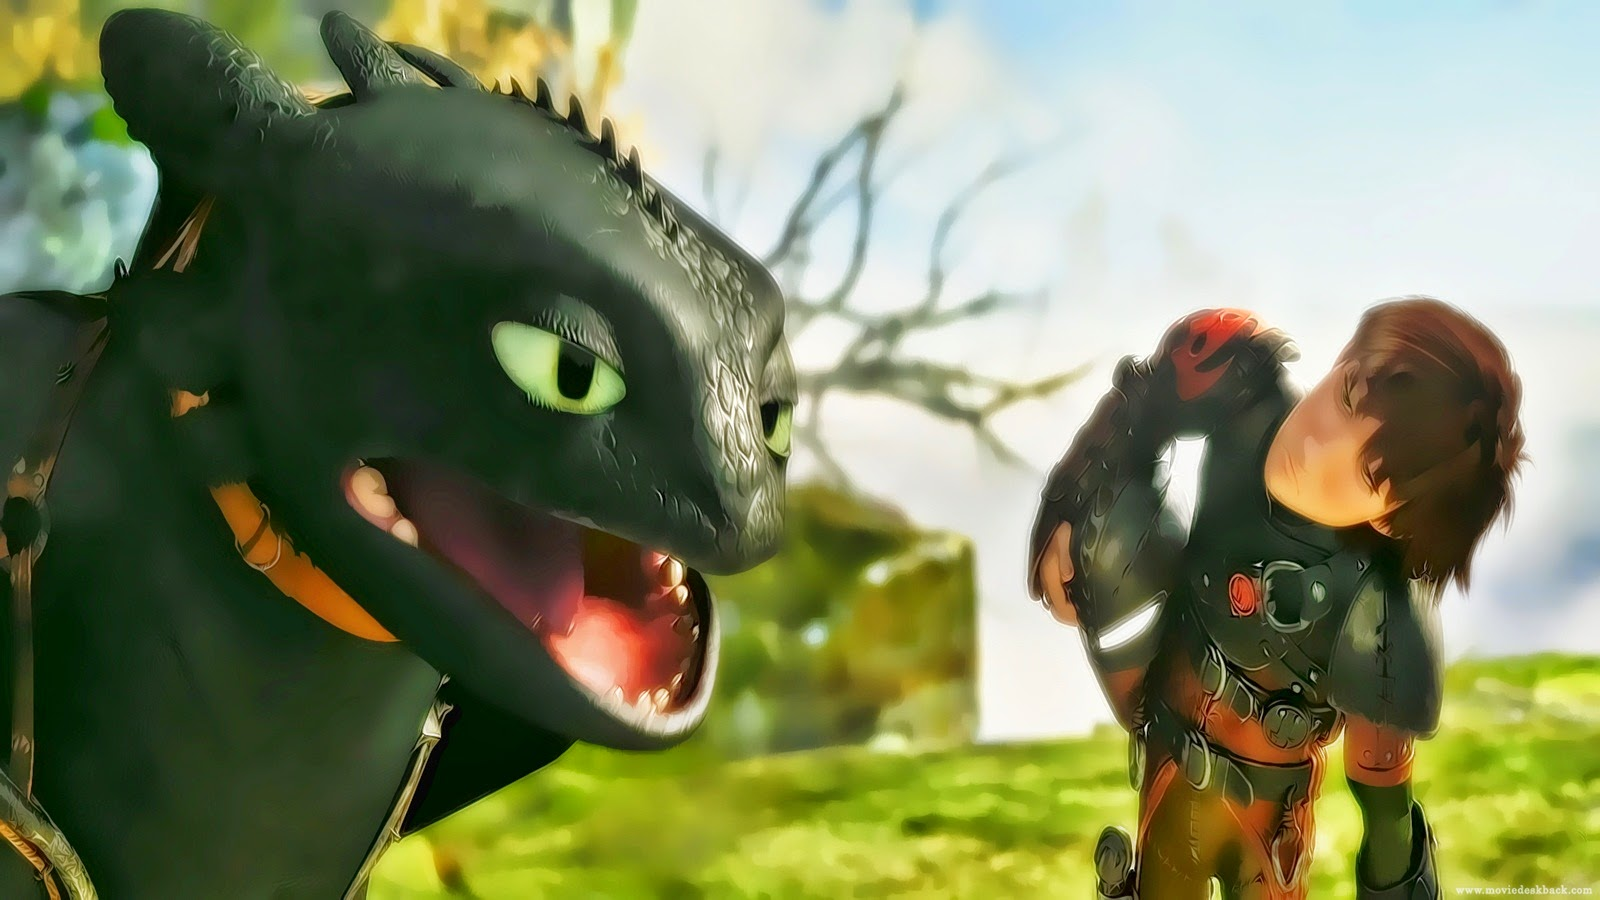 How To Train Your Dragon 2 Pics,wallpapers,images,free download